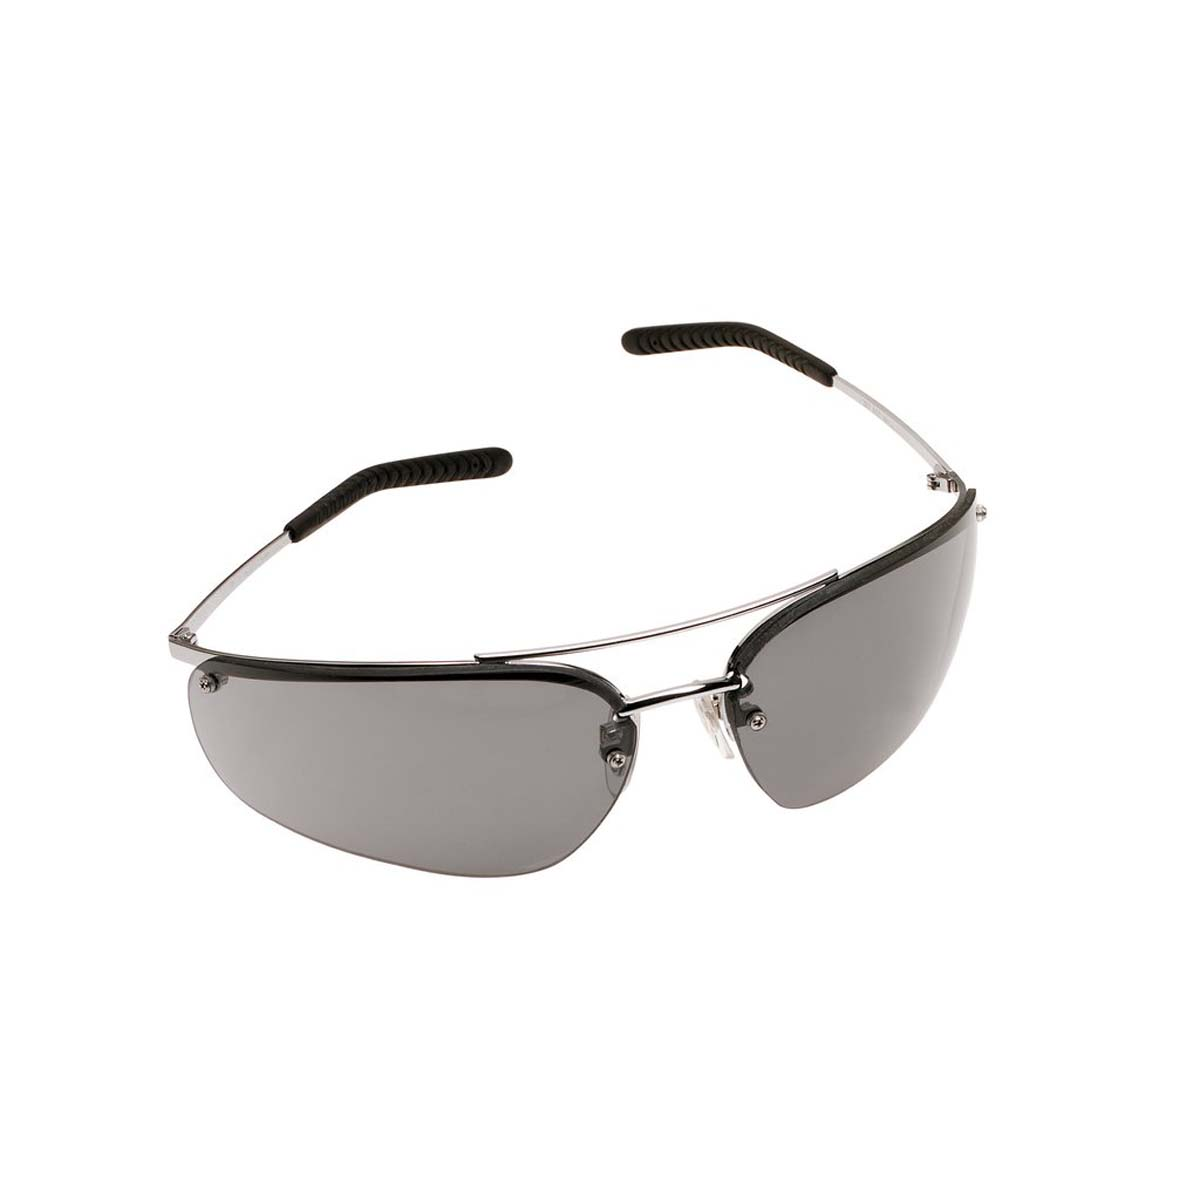 "3Mâ""¢ Metaliksâ""¢ Protective Eyewear 15171-10000-20 Gray Anti-Fog Lens, Polished Metal Frame"